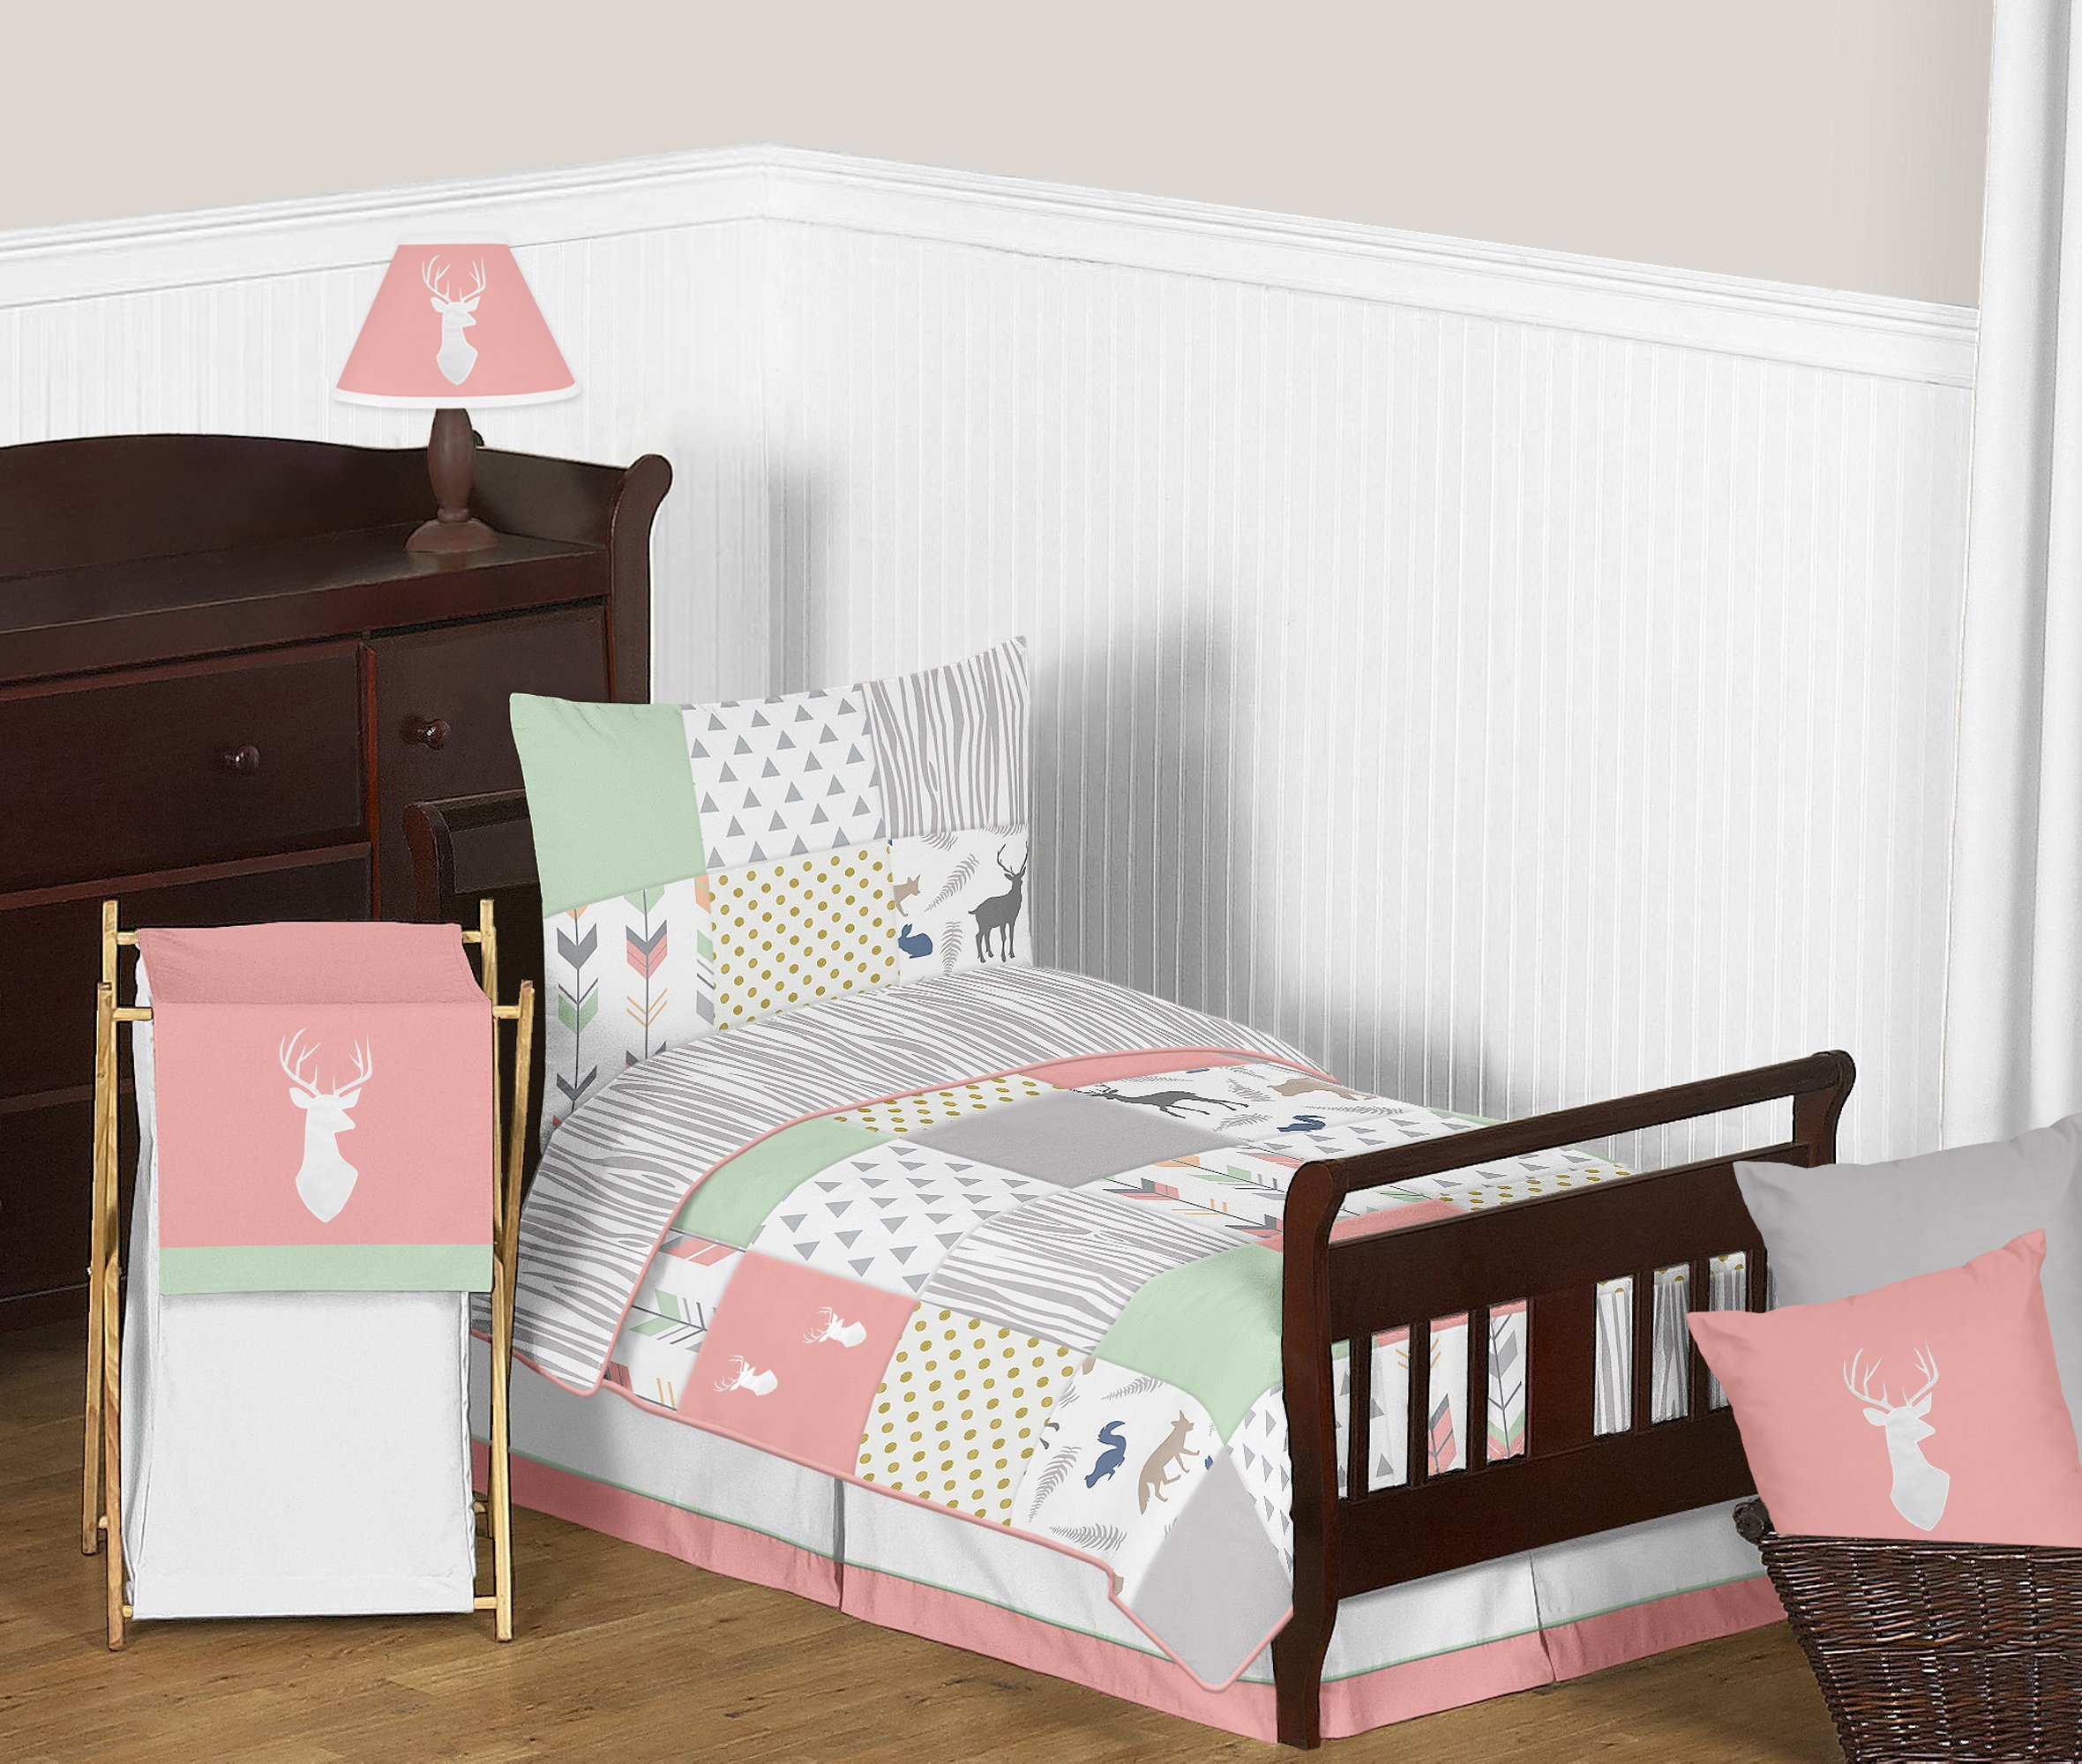 innovative toddler girl bedroom sets | Amazon.com : Sweet Jojo Designs Mint Toddler Bed Skirt for ...